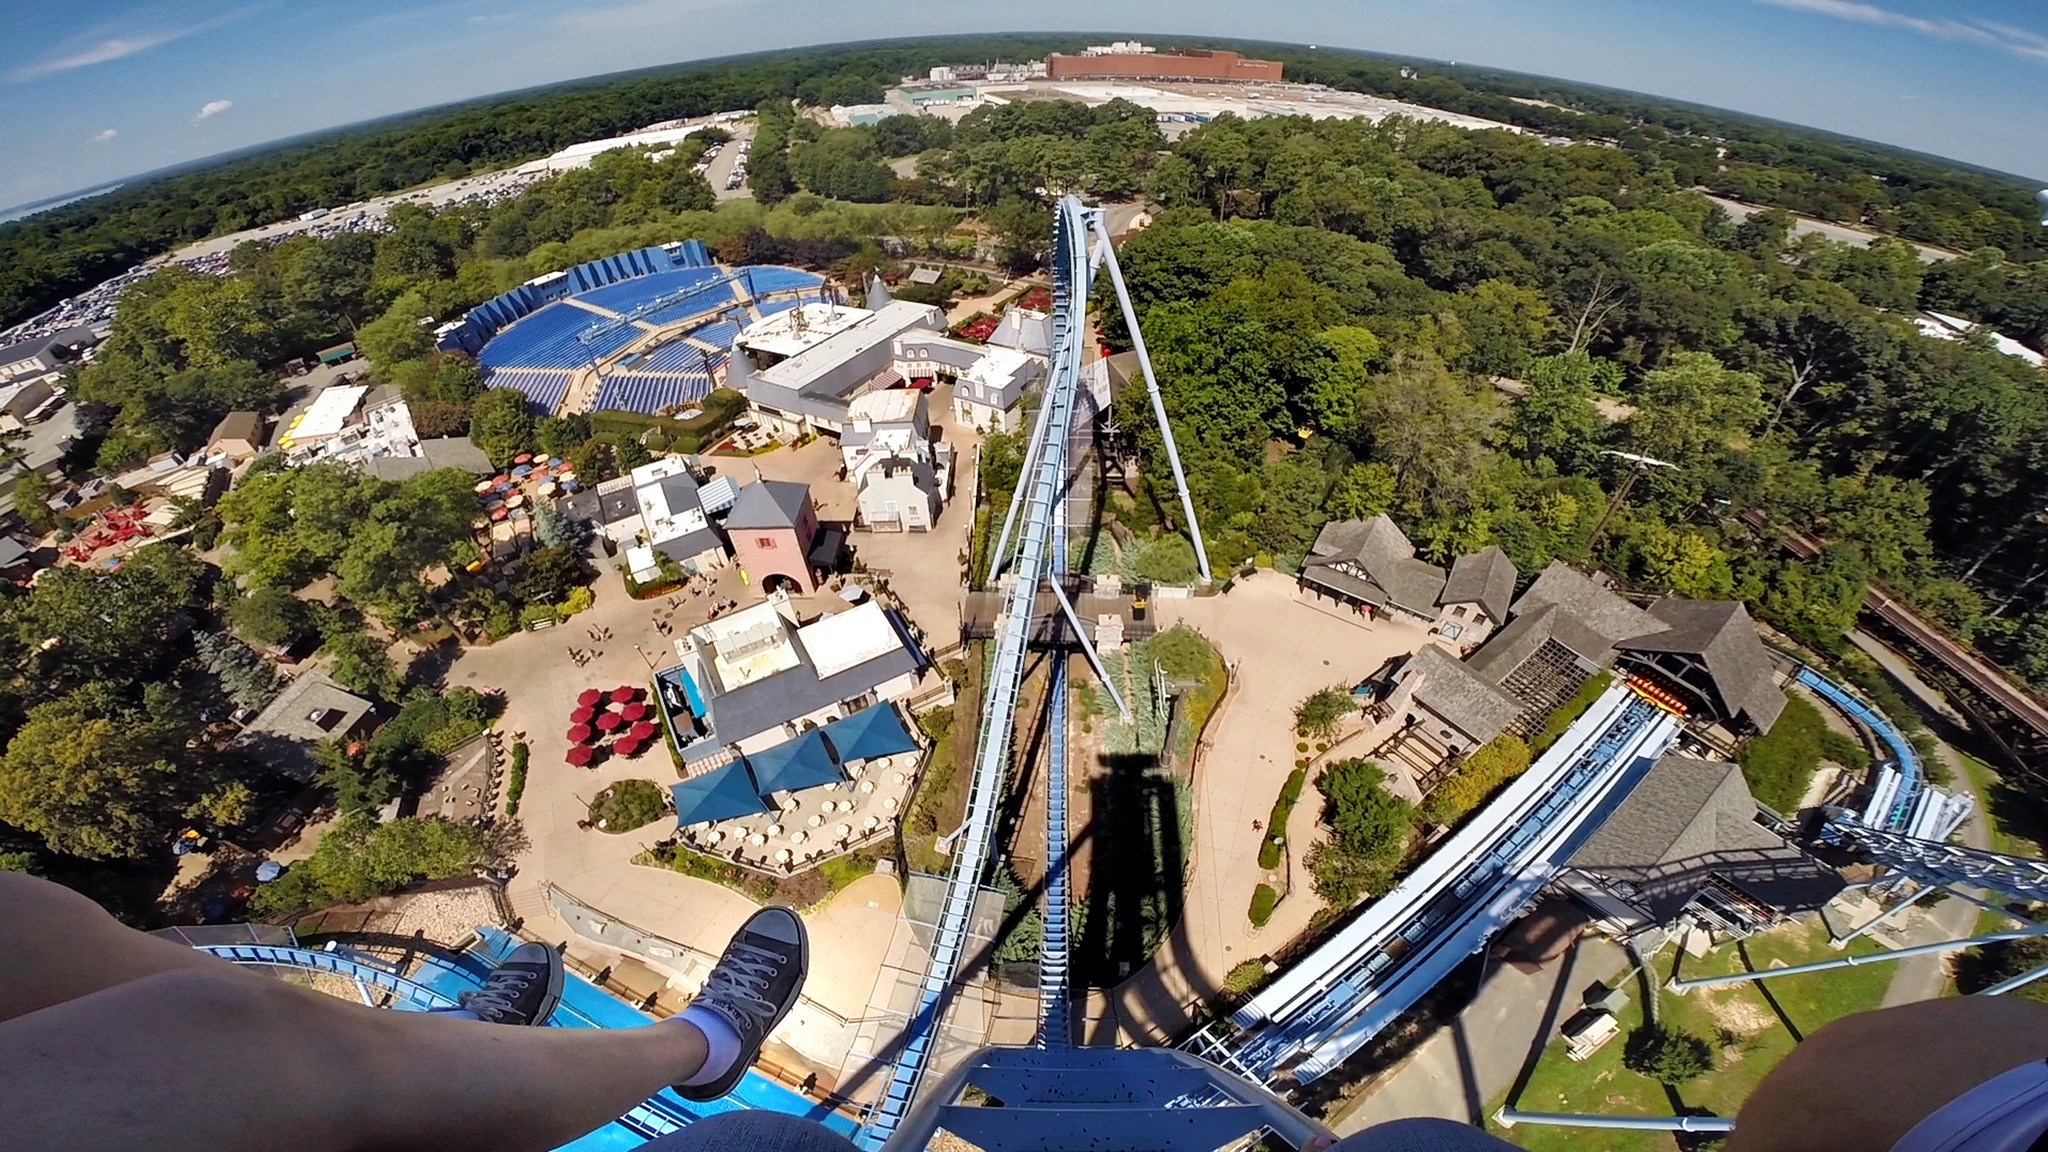 Local roller coasters daily press - Roller coasters at busch gardens ...